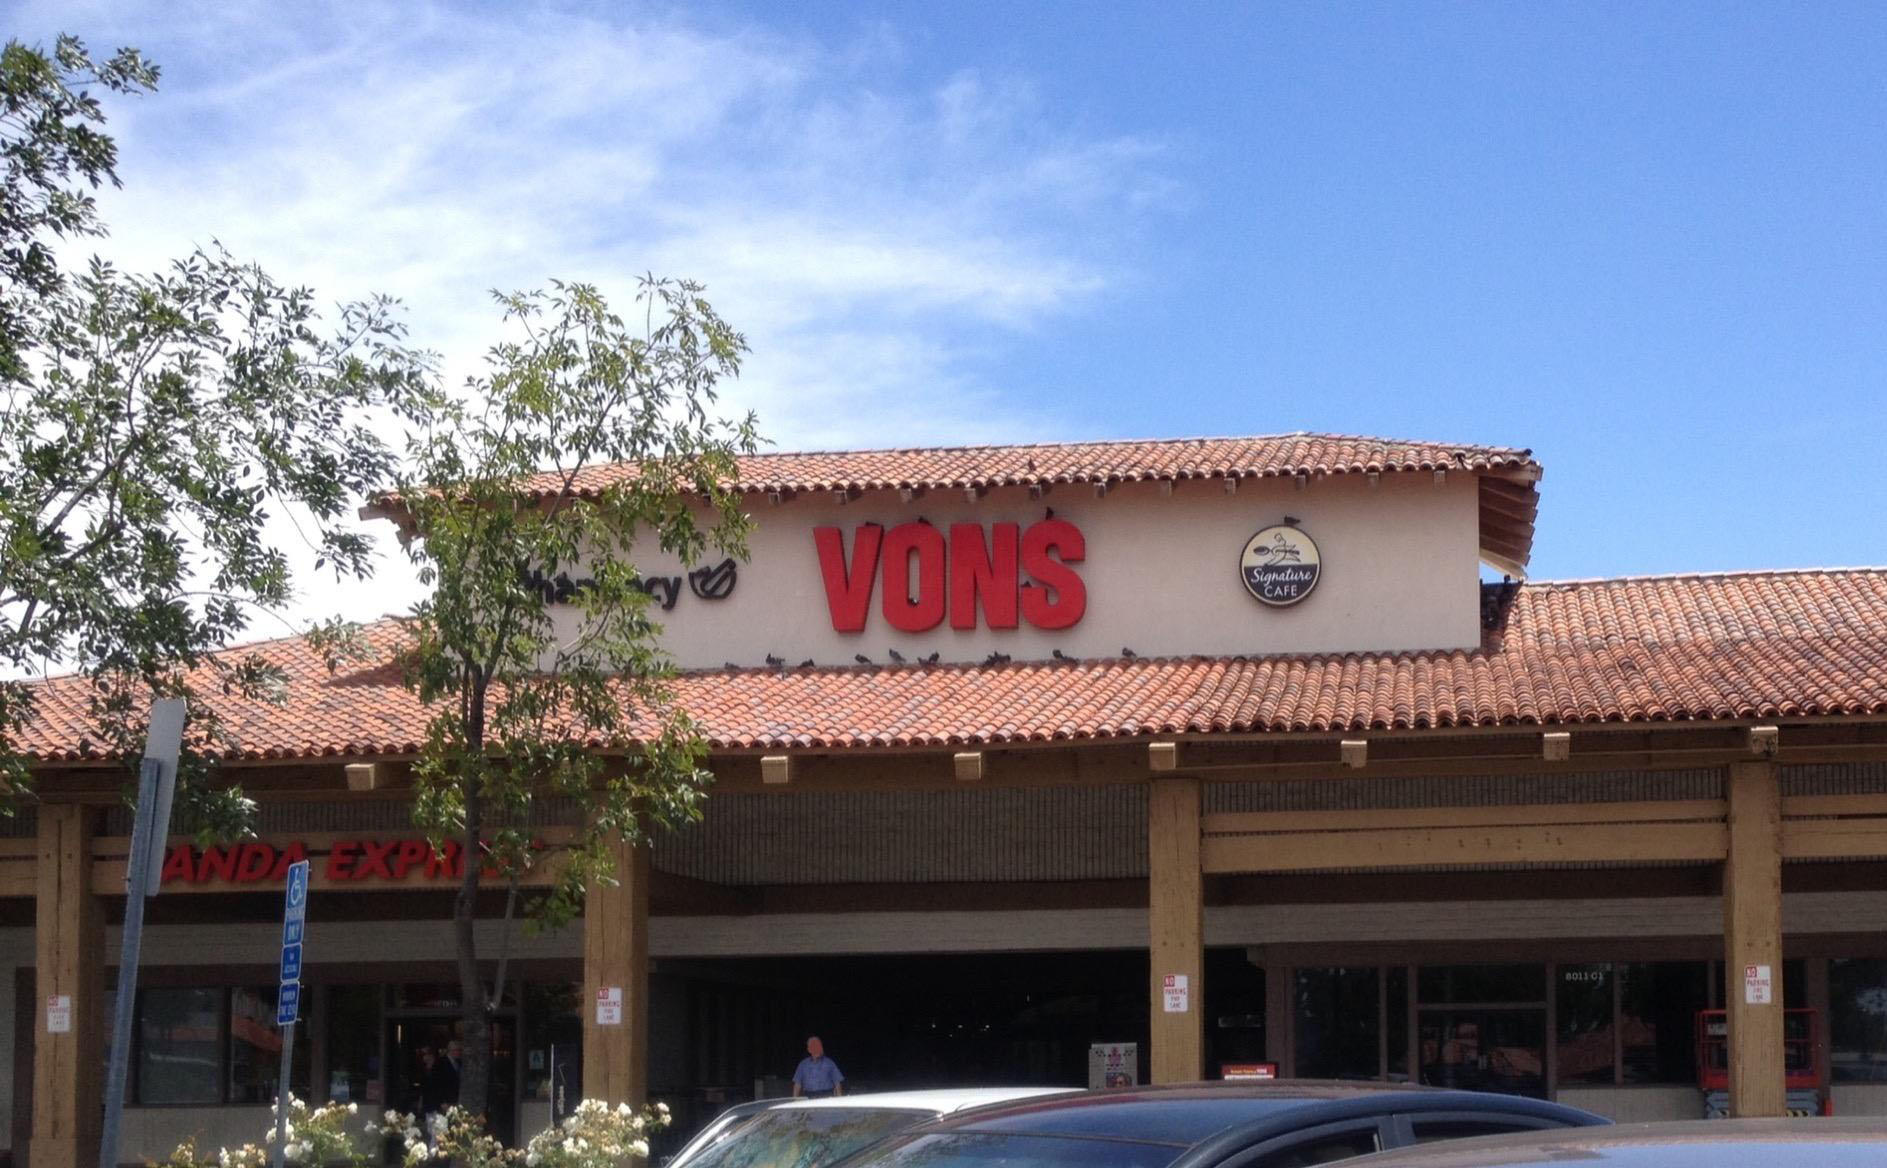 Vons Store Front Picture at 8011 University Ave in La Mesa CA